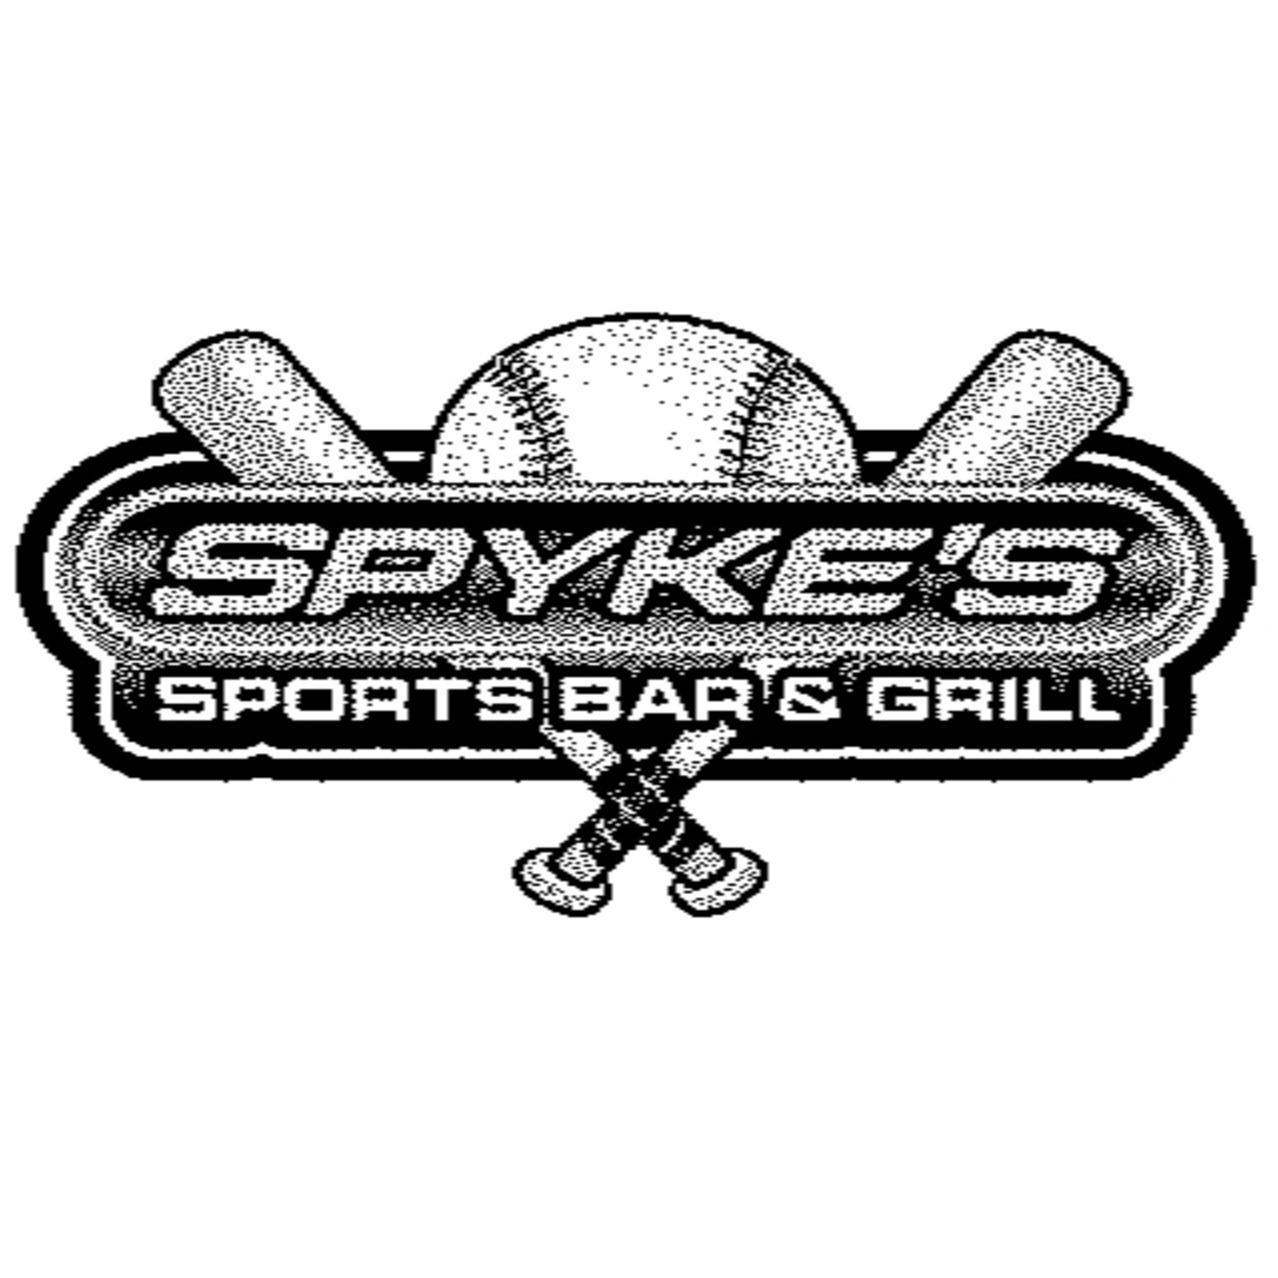 Spykes Bar and Grill - INpolis, IN 46234 - (317)426-2216 | ShowMeLocal.com